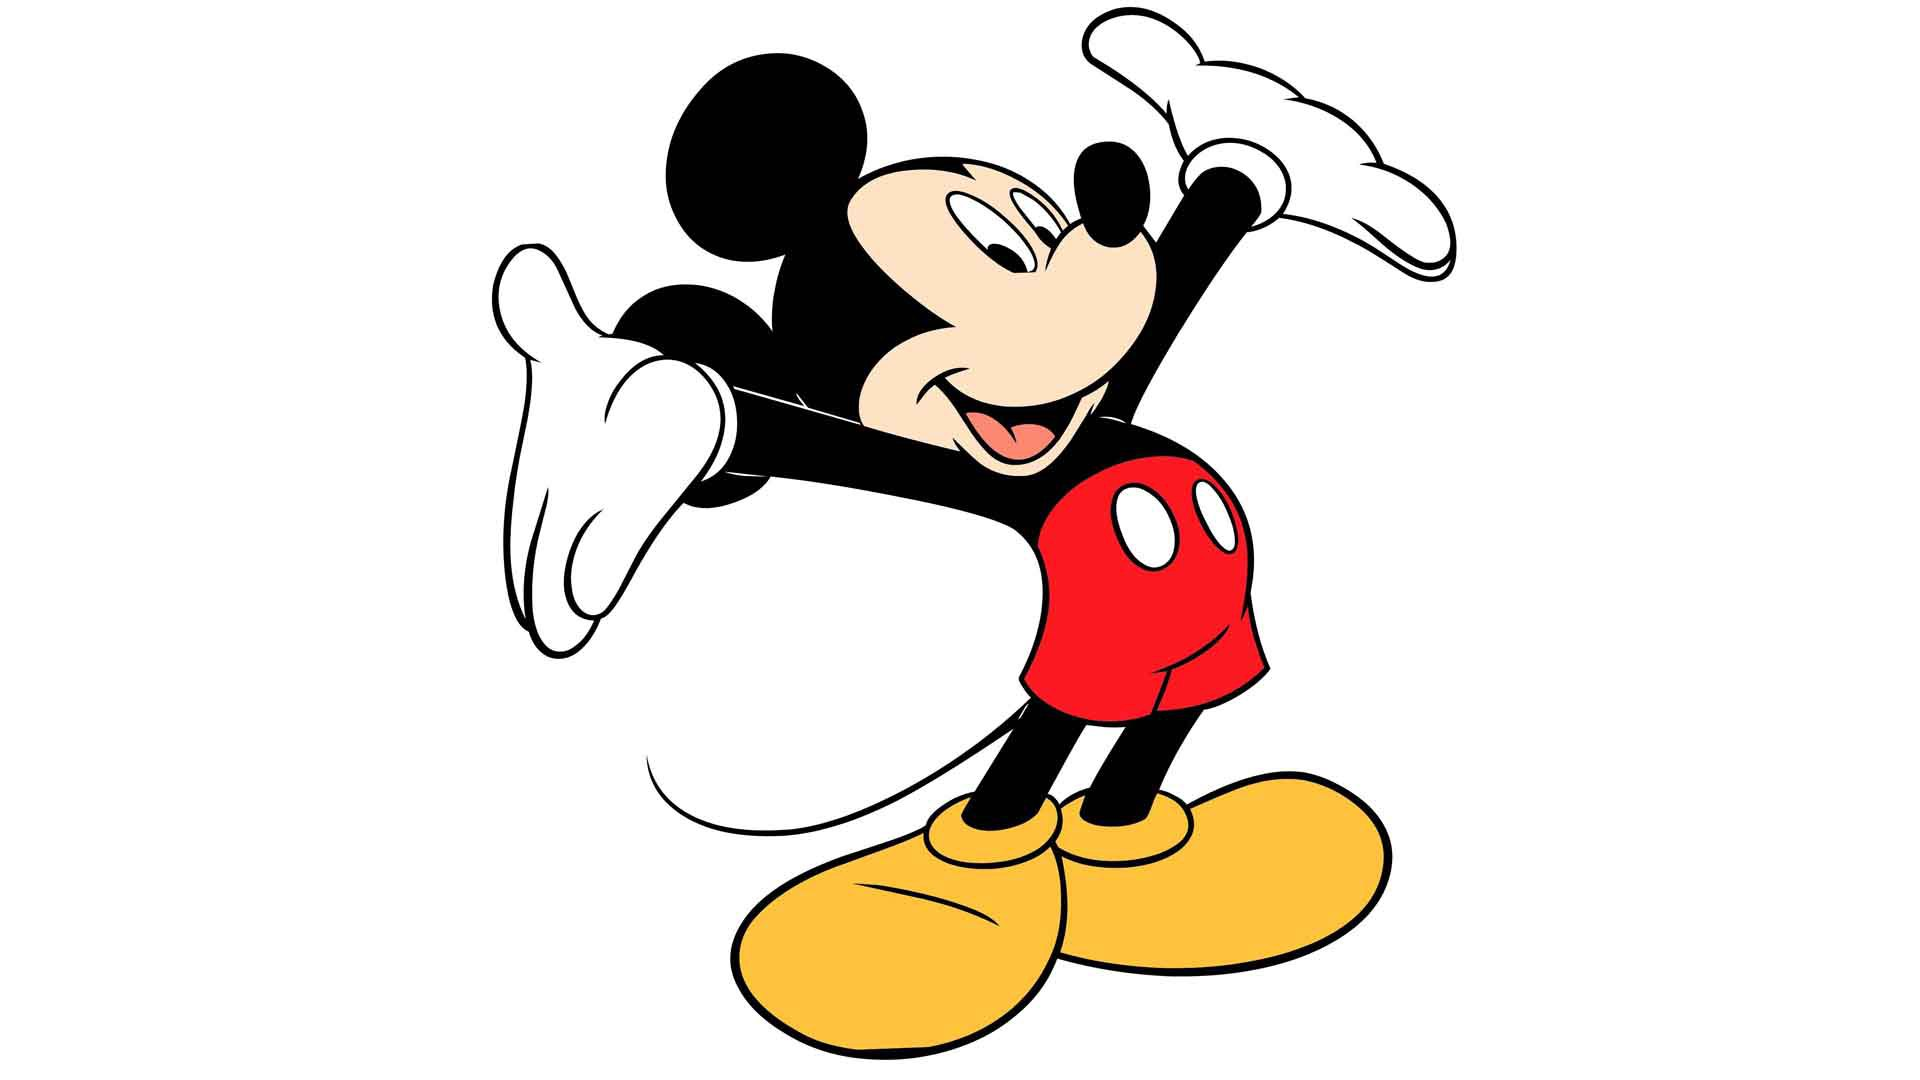 mickey mouse wallpapers images photos pictures backgrounds. Black Bedroom Furniture Sets. Home Design Ideas